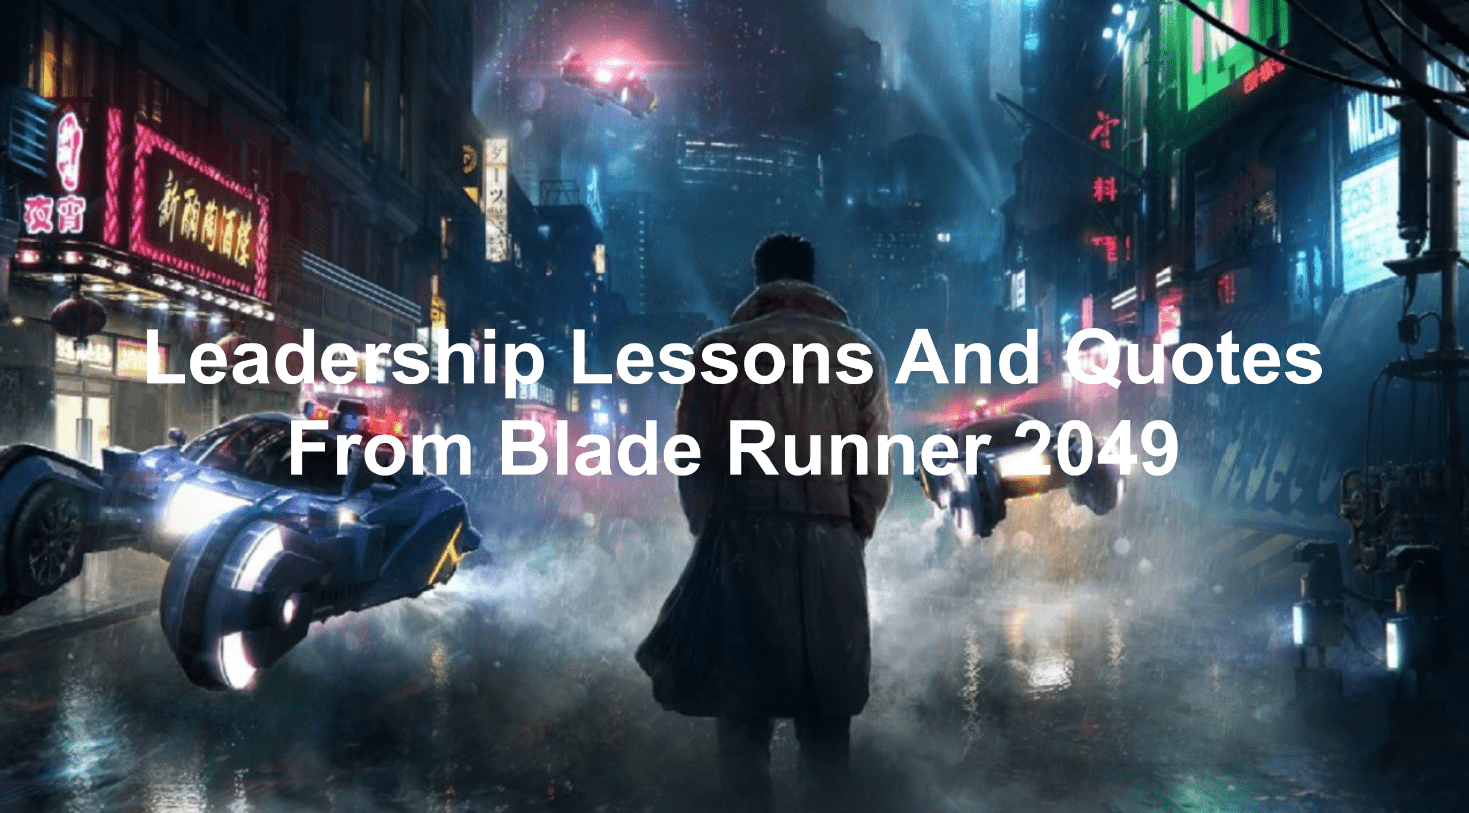 Leadership lessons and quotes from Blade Runner 2049